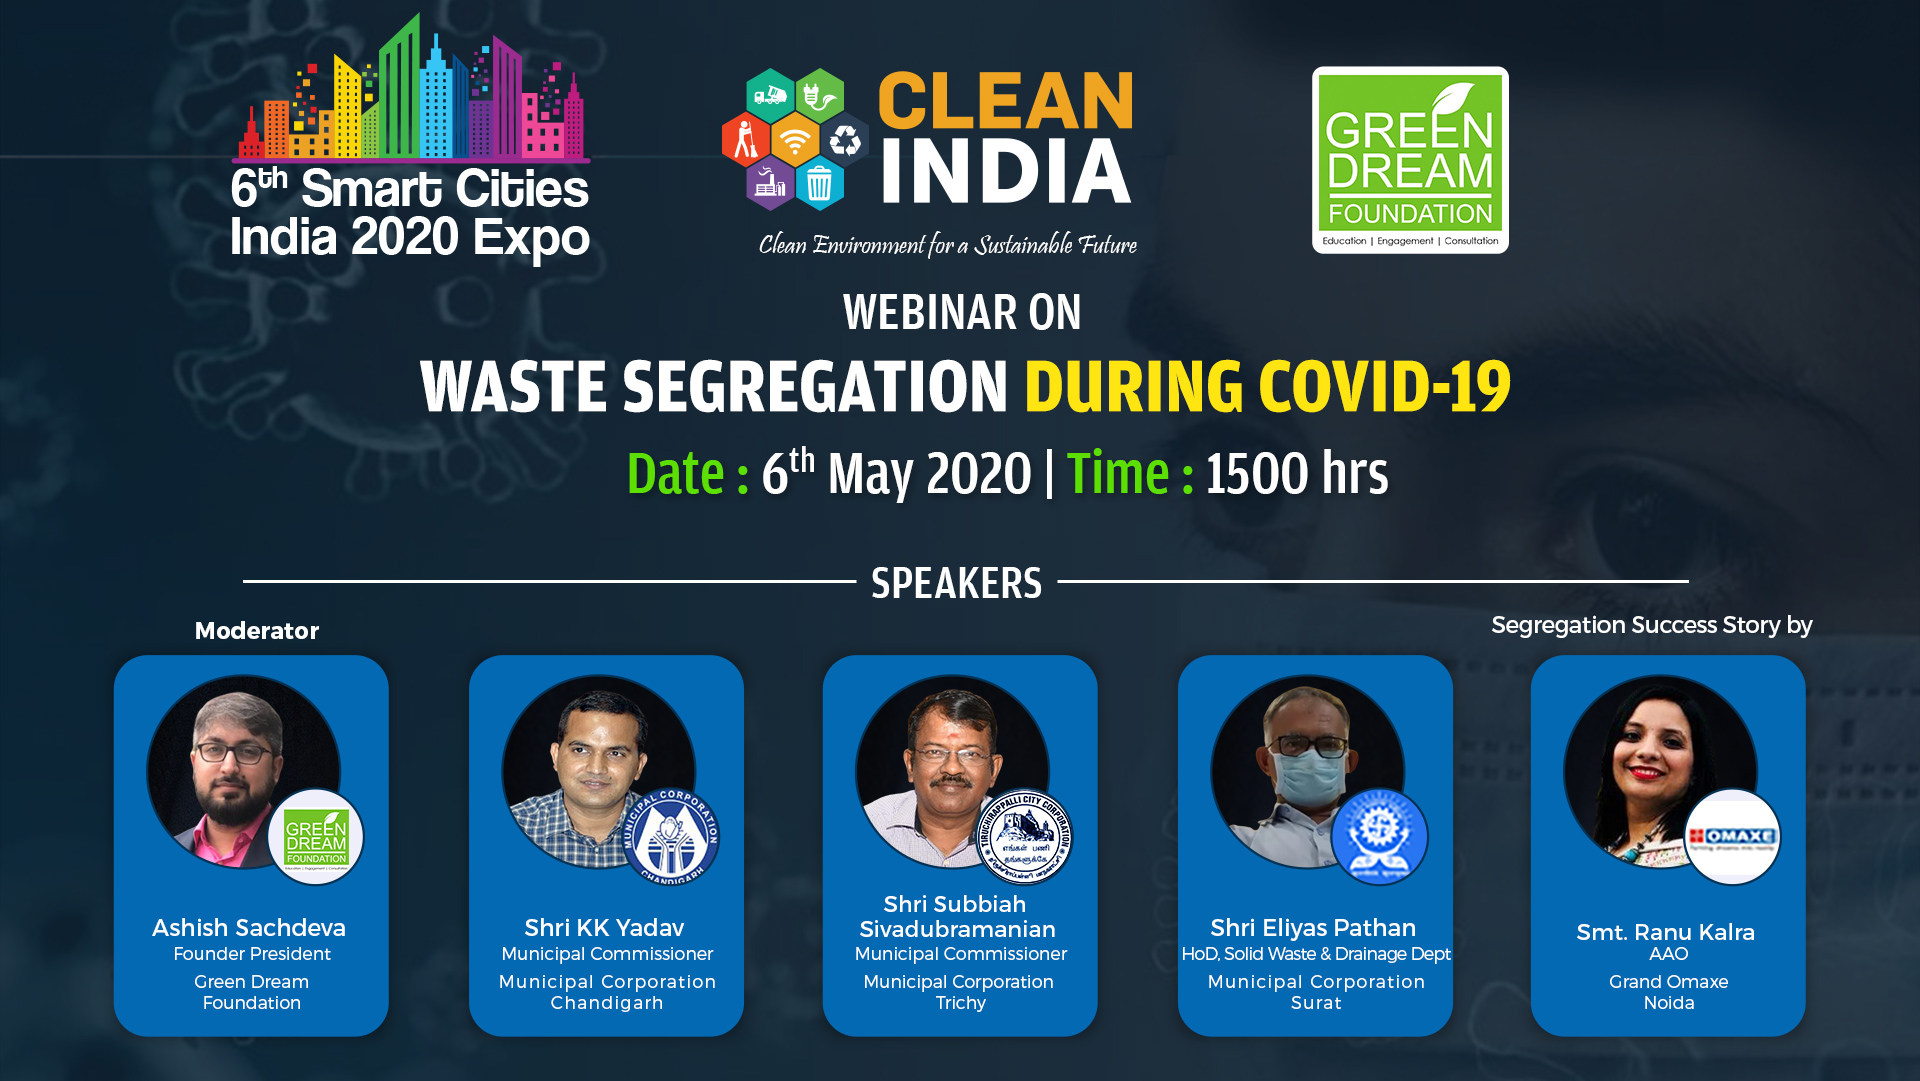 Webinar on Waste Segregation during COVID-19